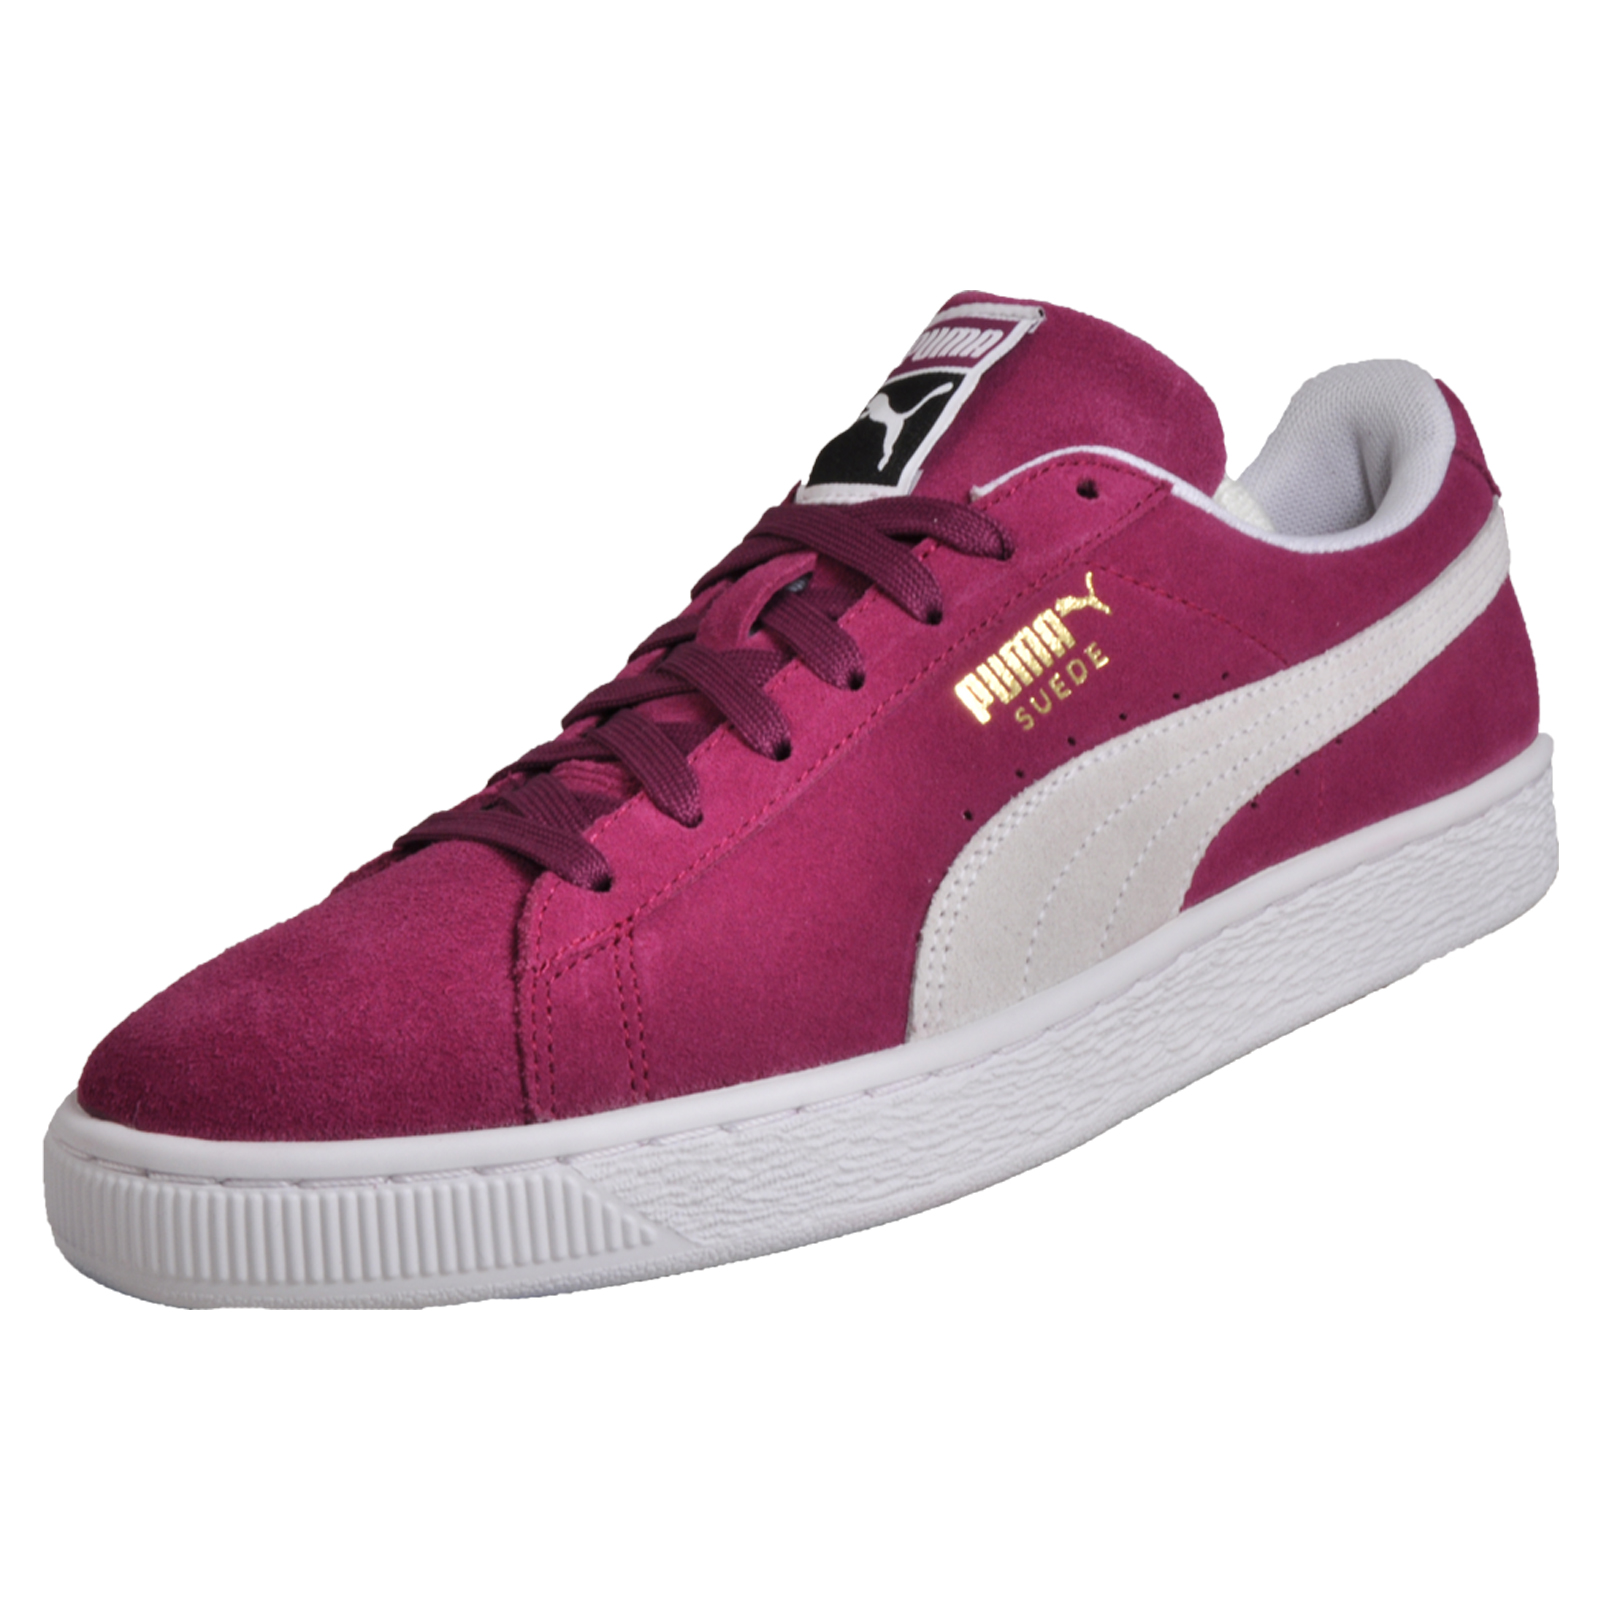 dce539f6c59 Details about Puma Suede Leather Men s Lifestyle Classic Casual Vintage  Retro Sneakers Trainer